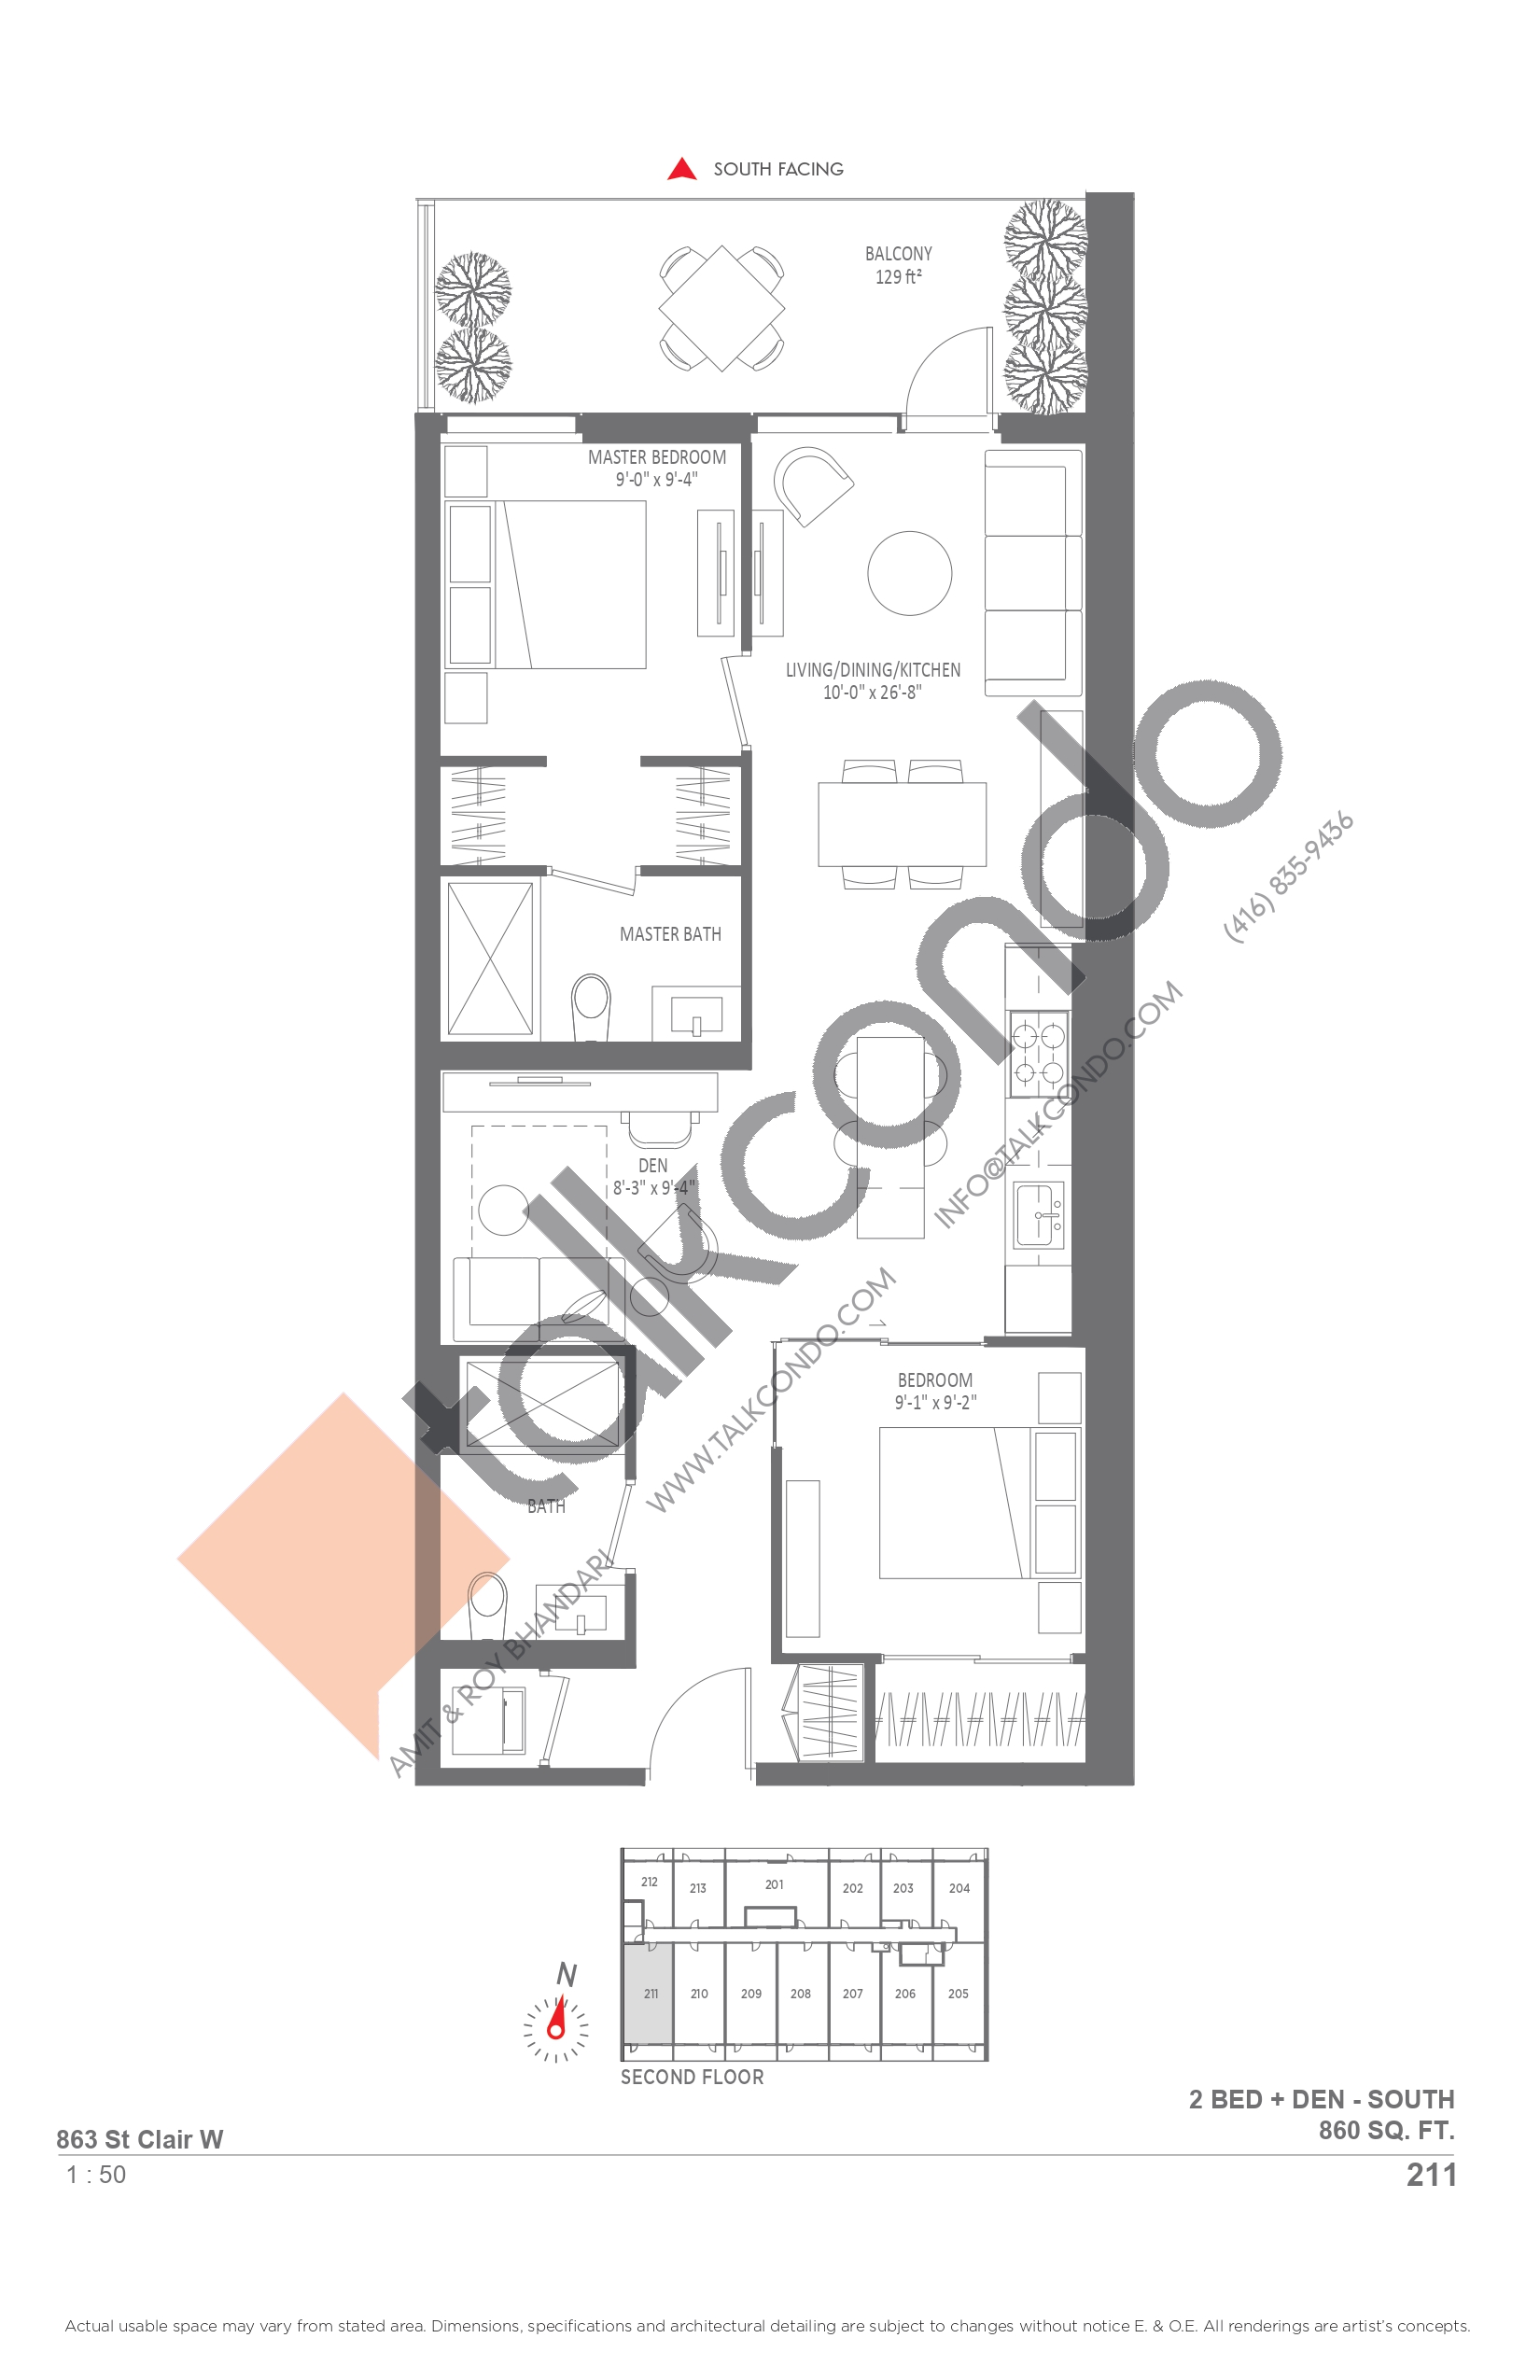 211 Floor Plan at Monza Condos - 860 sq.ft